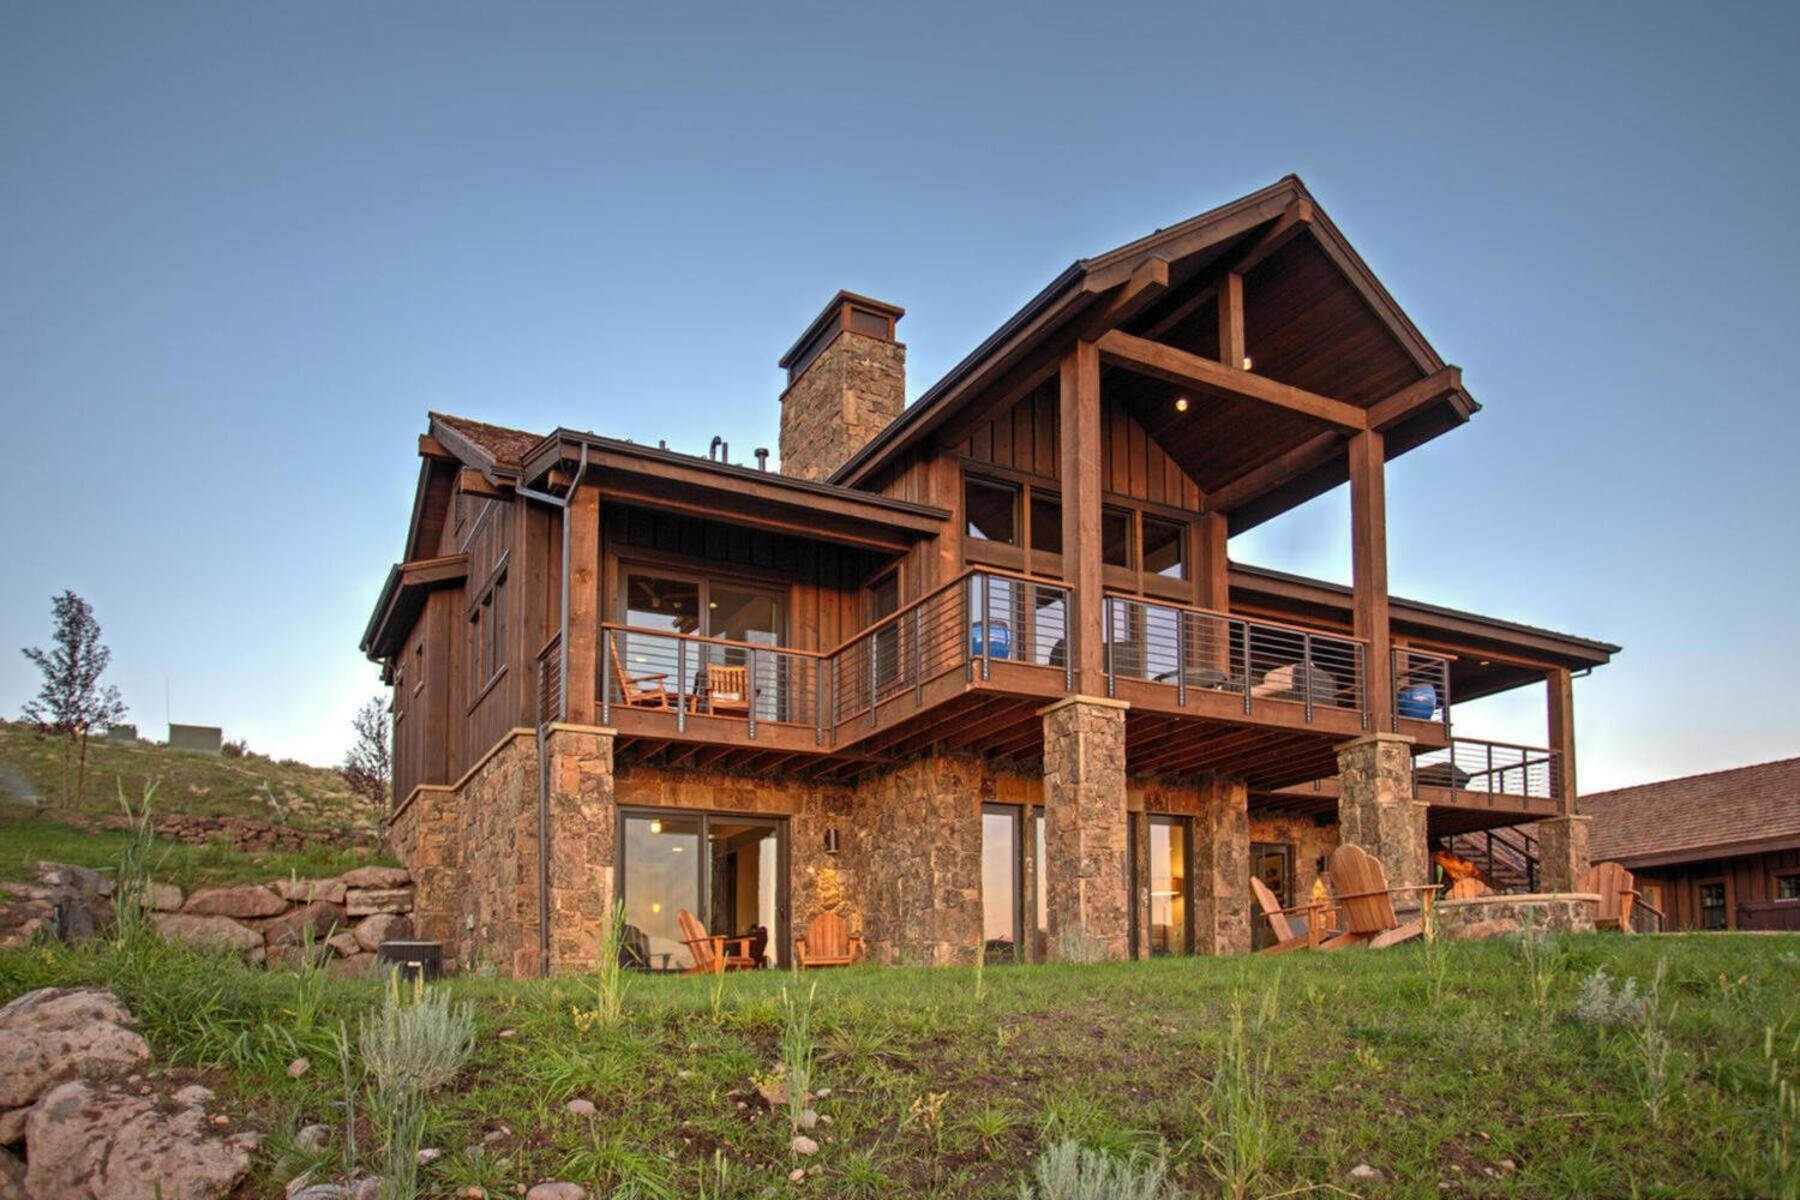 Single Family Homes for Sale at Expanded Juniper Cabin with Spectacular Views! 5941 N Shooting Star Circle Heber City, Utah 84032 United States